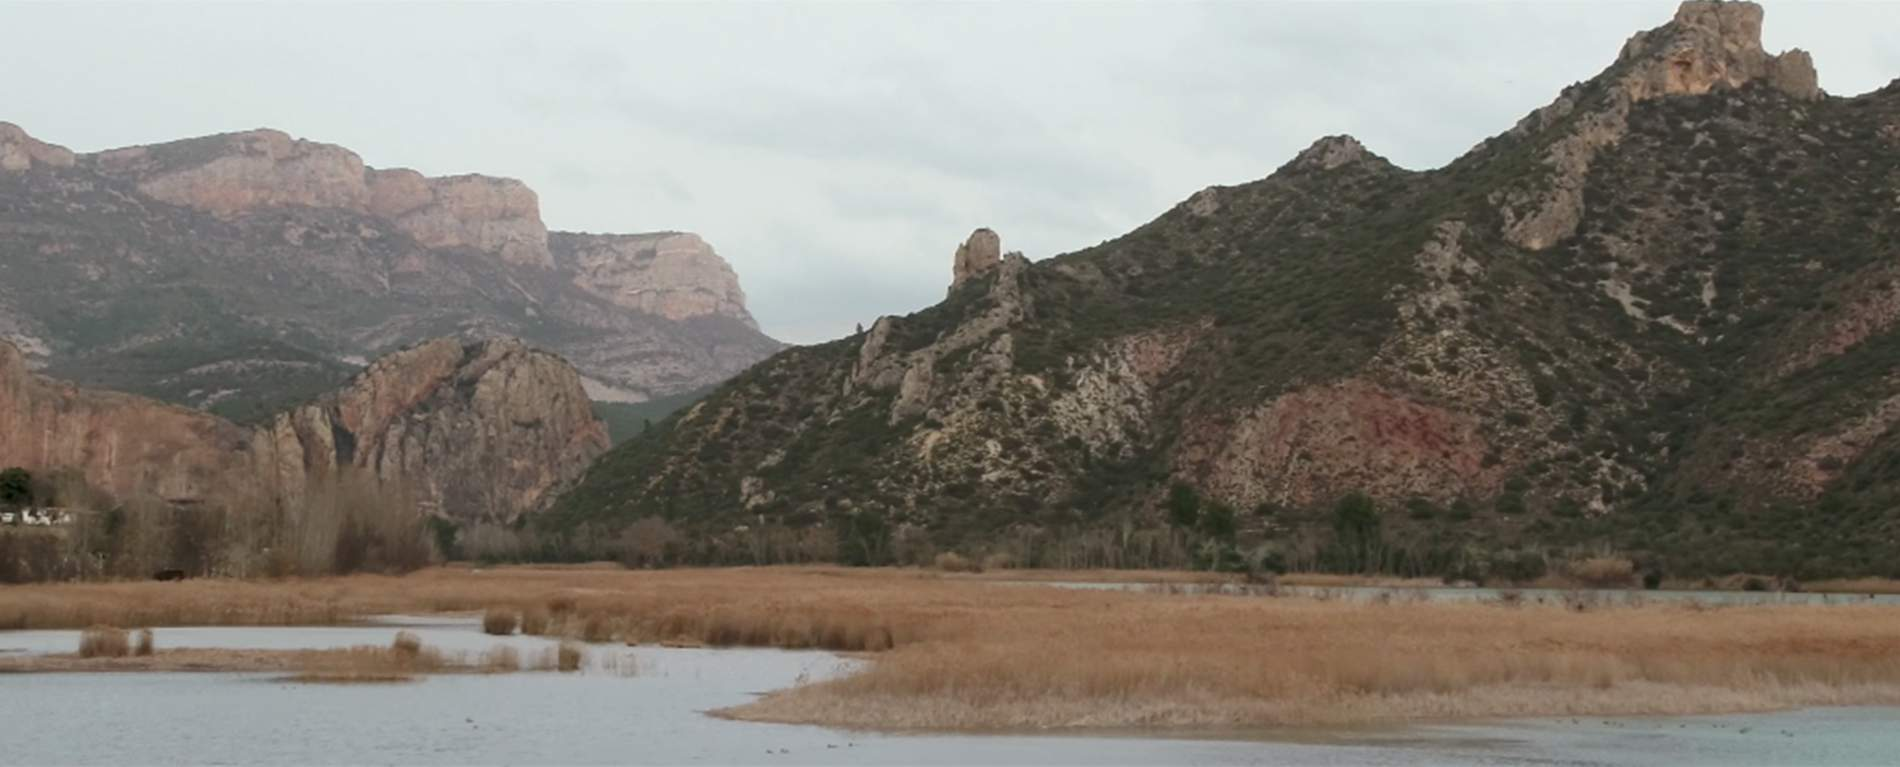 Photograph of rocky mountains